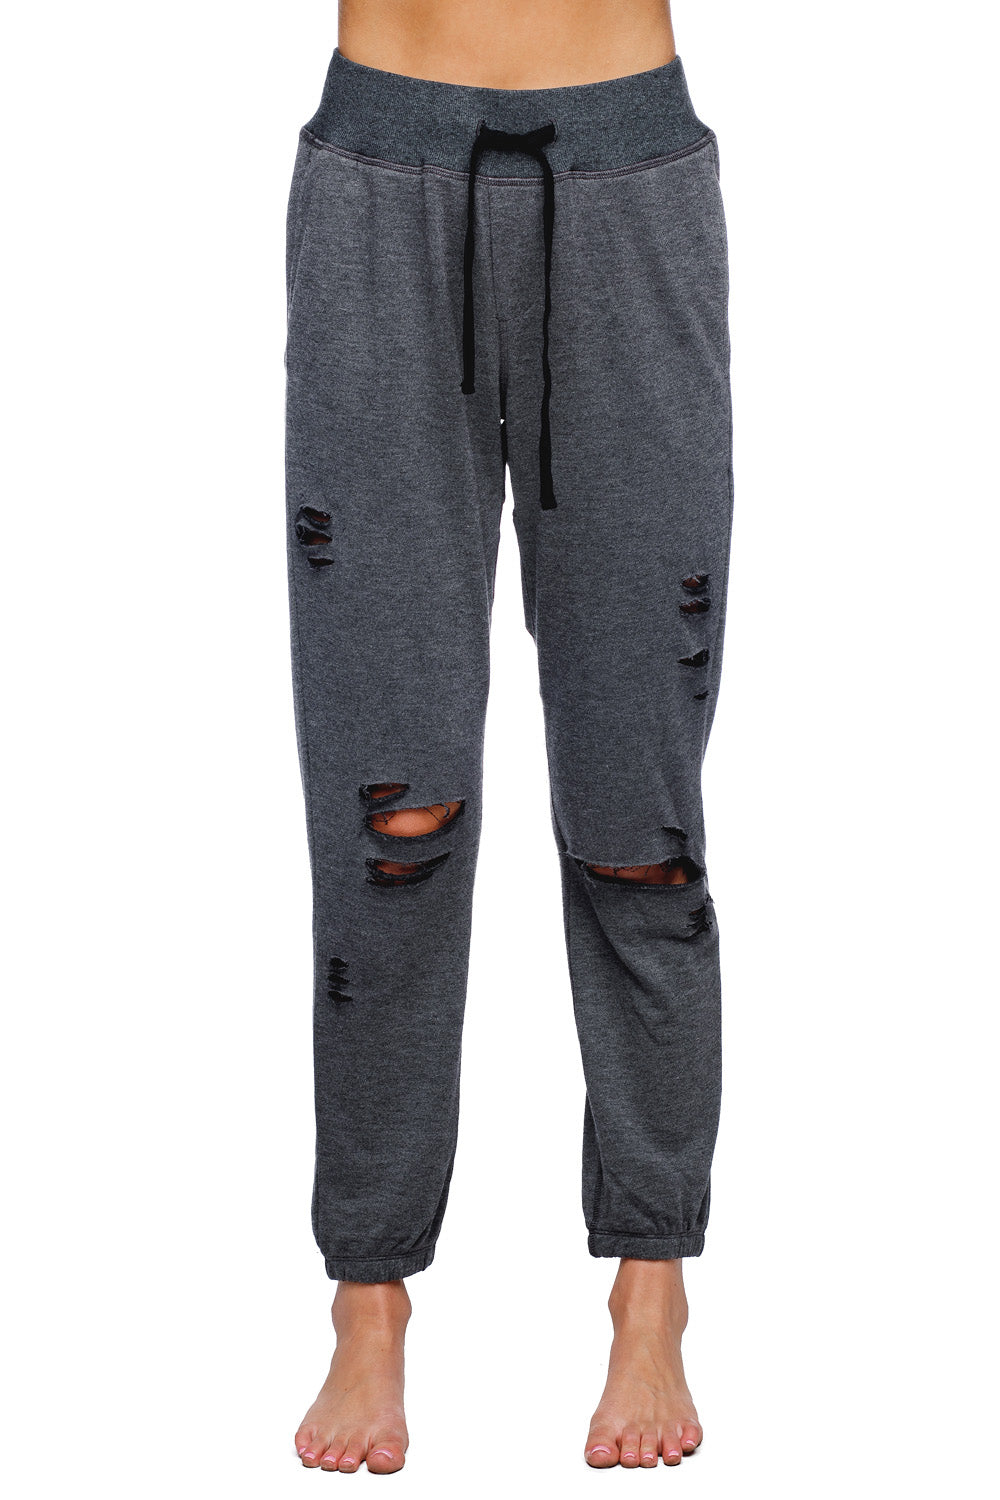 BuddyLove_Austin_Distressed_Jogger_Pant__Charcoal__S_Grey